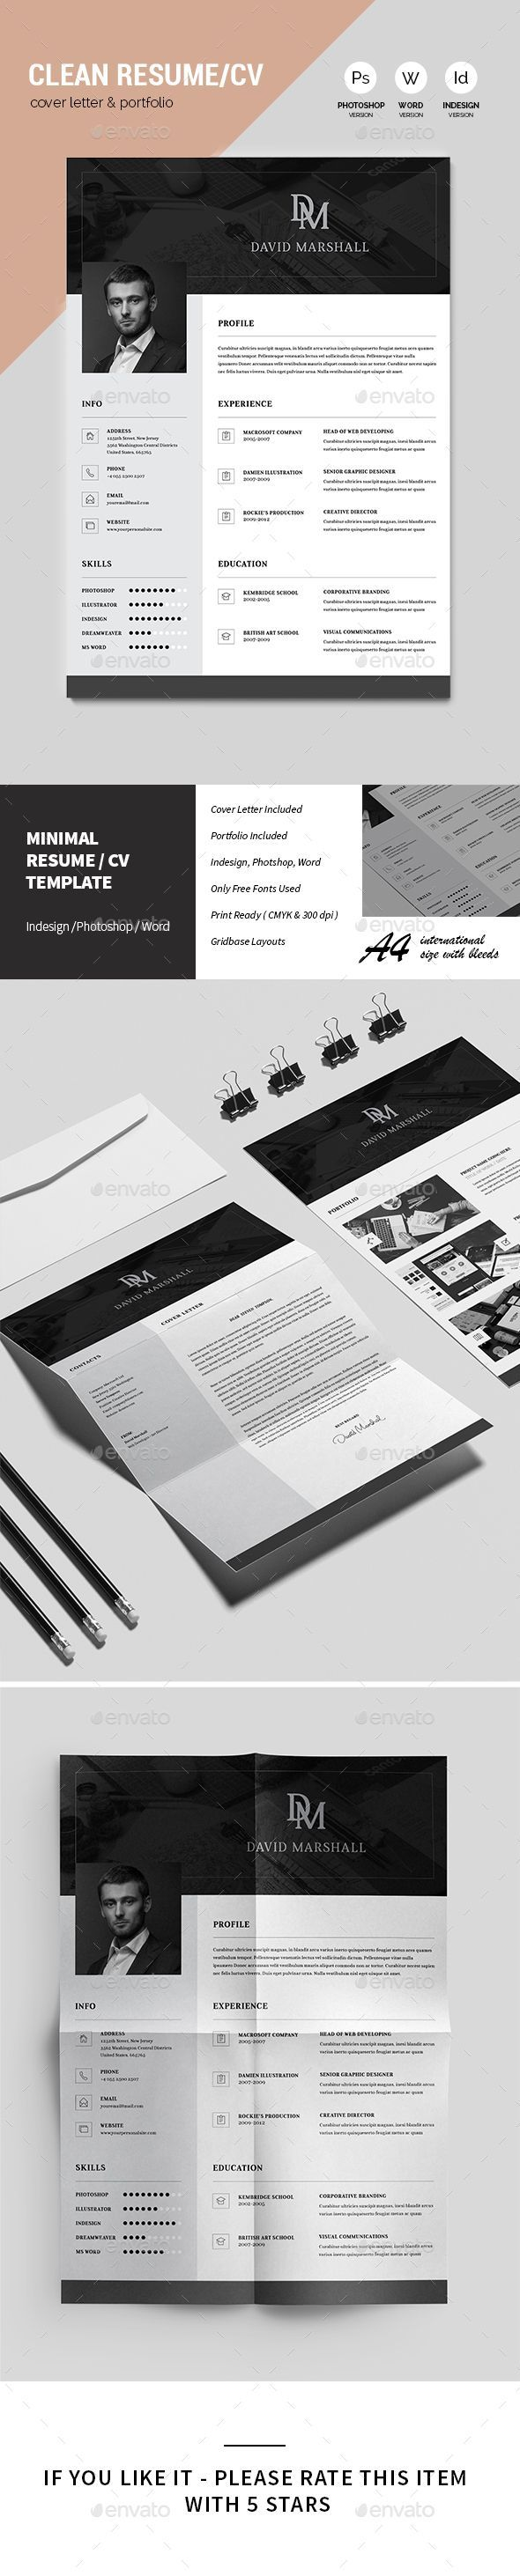 Pin by Ann Jay on job search Resume design, Resume